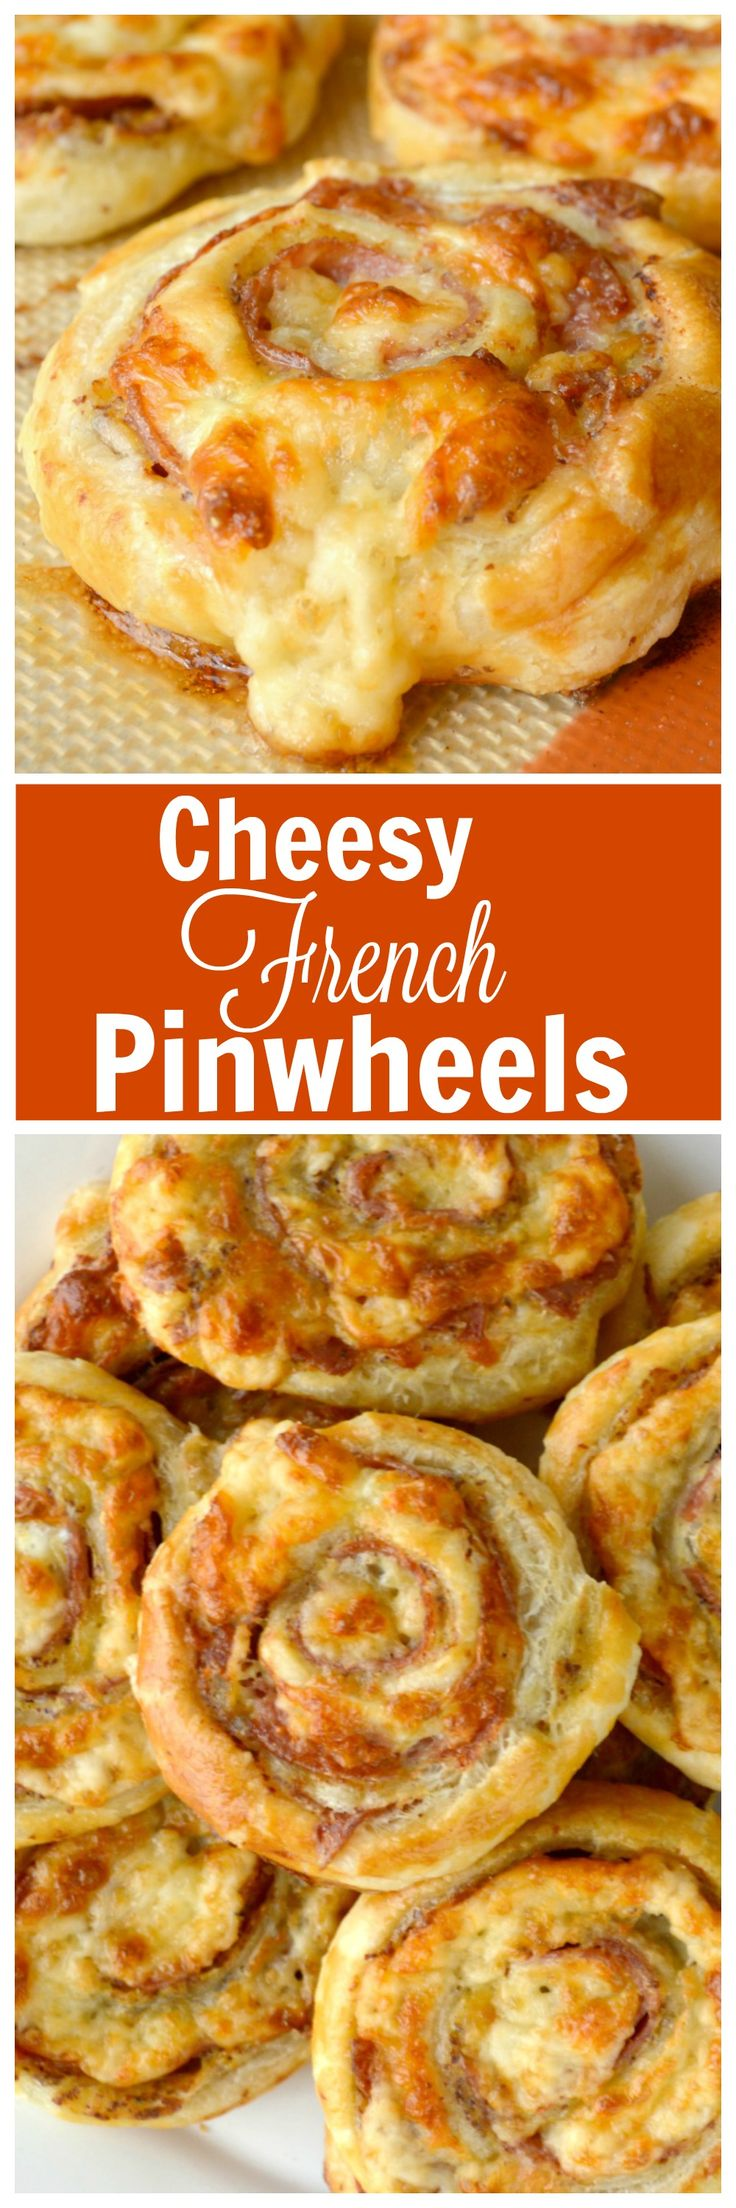 Cheesy French Pinwheels. A super easy appetizer that starts with store bought puff pastry. These are delic